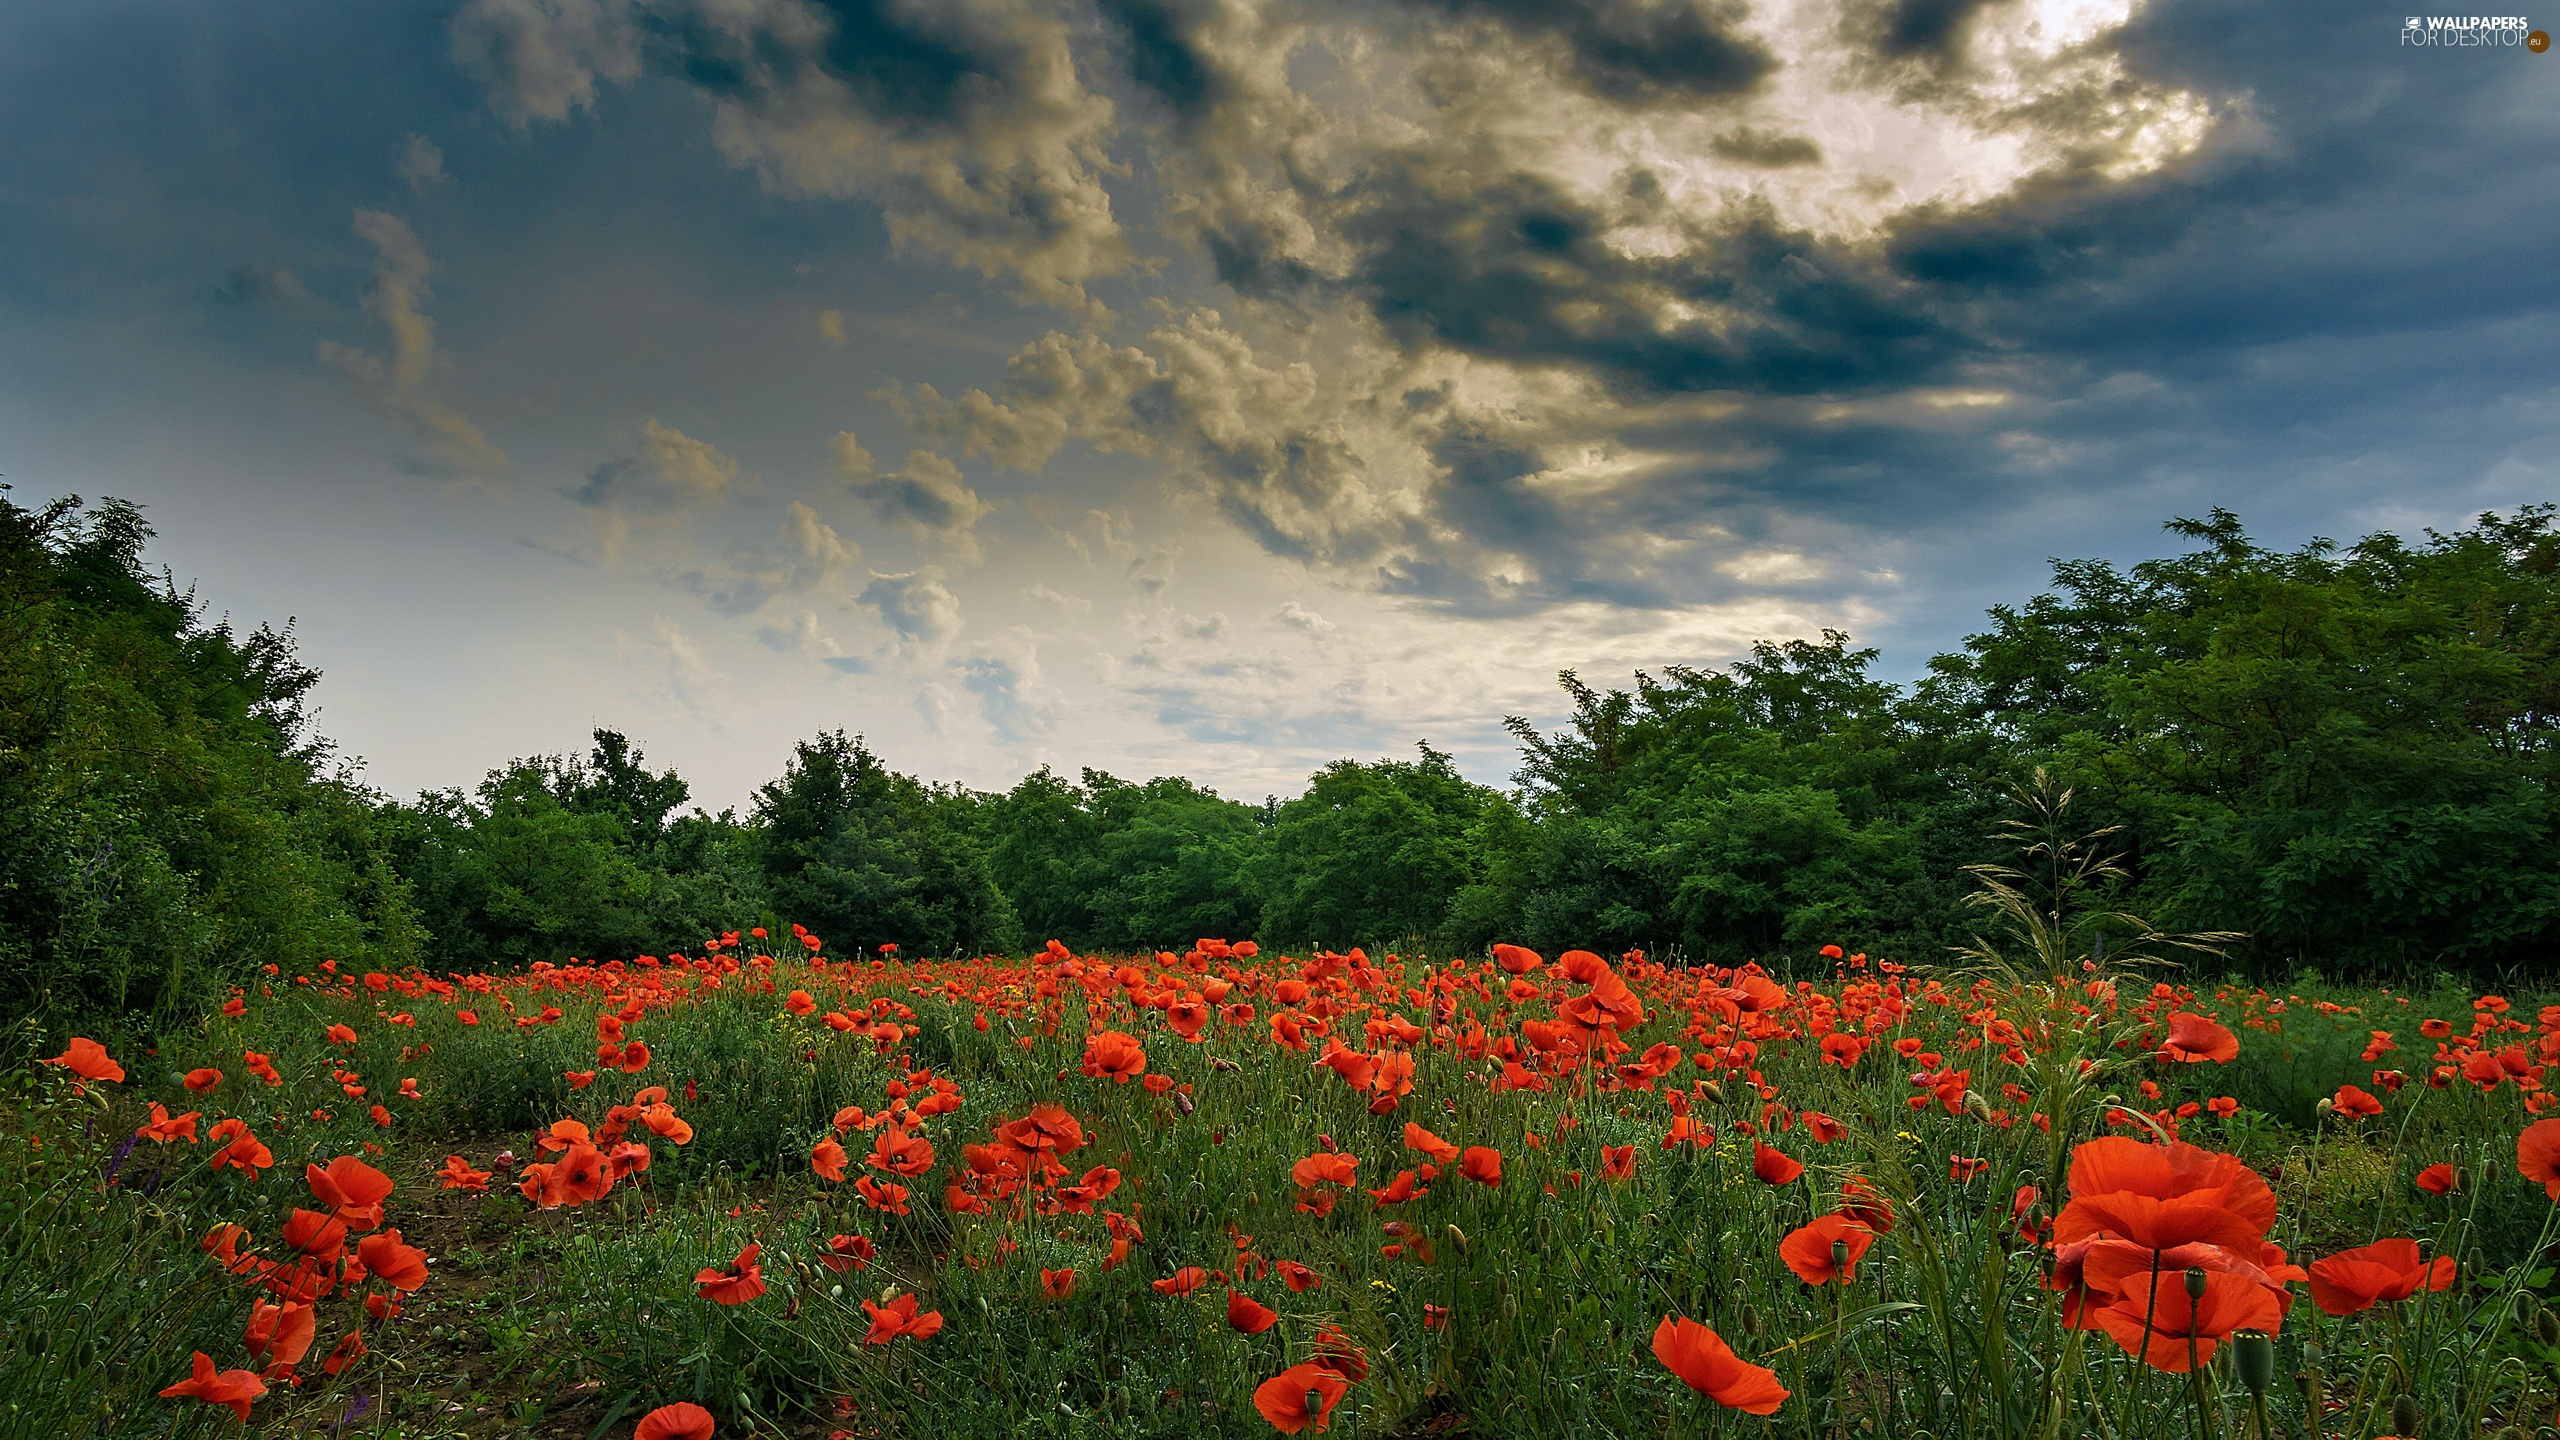 viewes, trees, Meadow, clouds, papavers